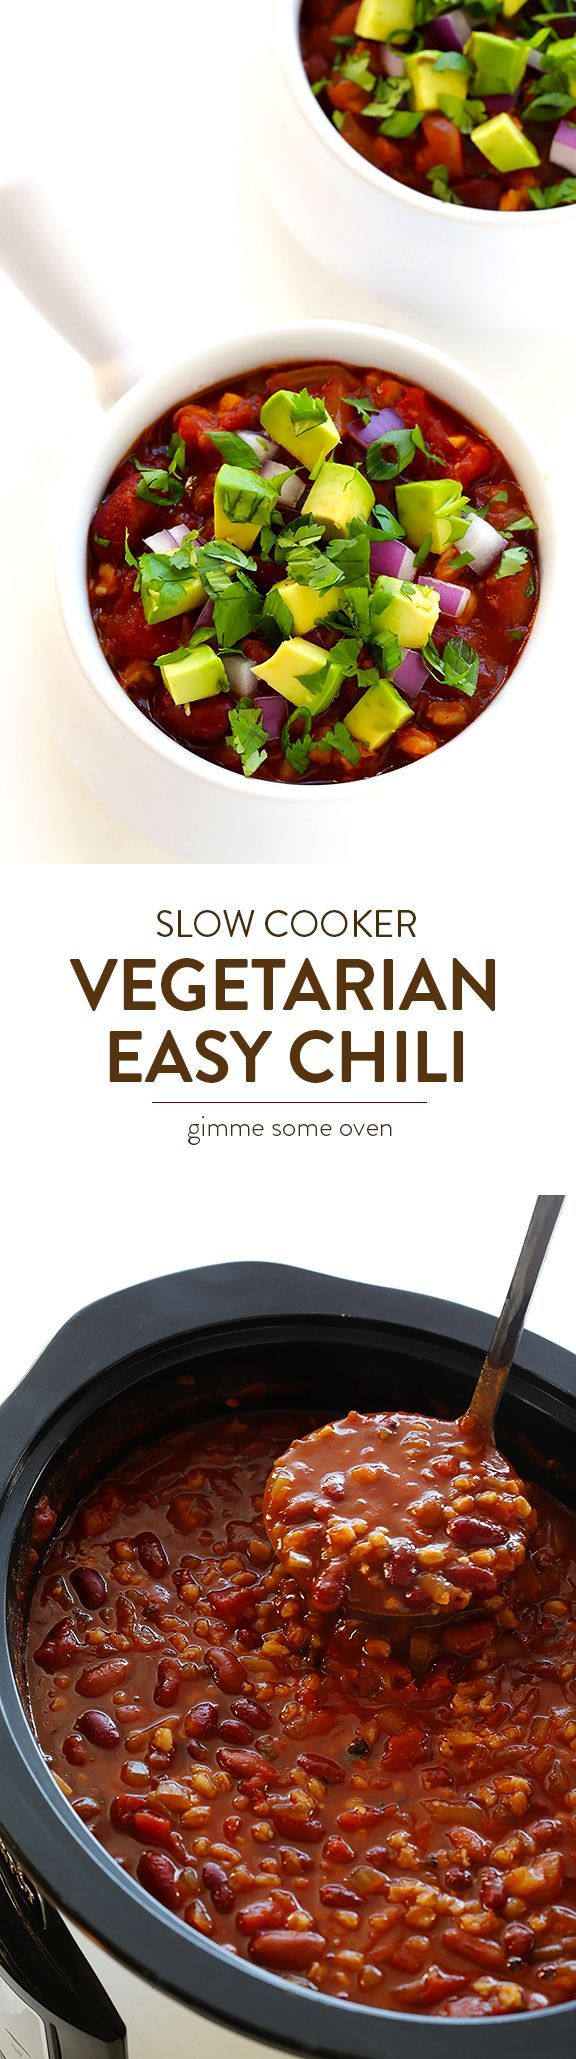 Slow Cooker Vegetarian Chili -- this recipe is easy to make in the crock pot or on the stovetop, plus it's naturally vegan, gluten-free, and SO delicious! | gimmesomeoven.com